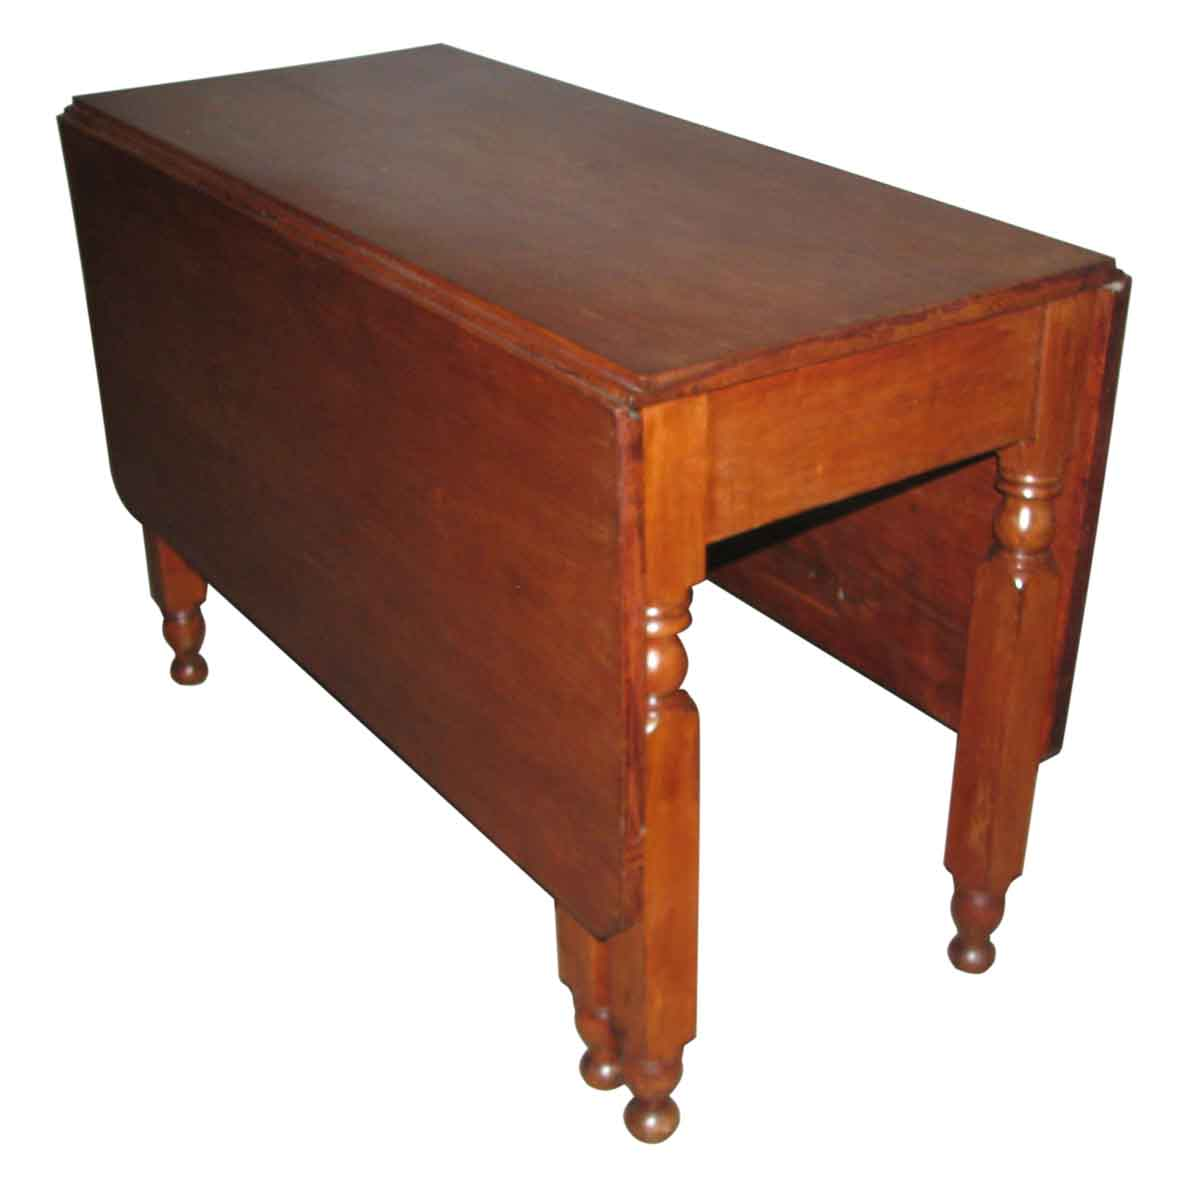 drop leaf white kitchen table make up air for residential hoods american style cherry olde good things